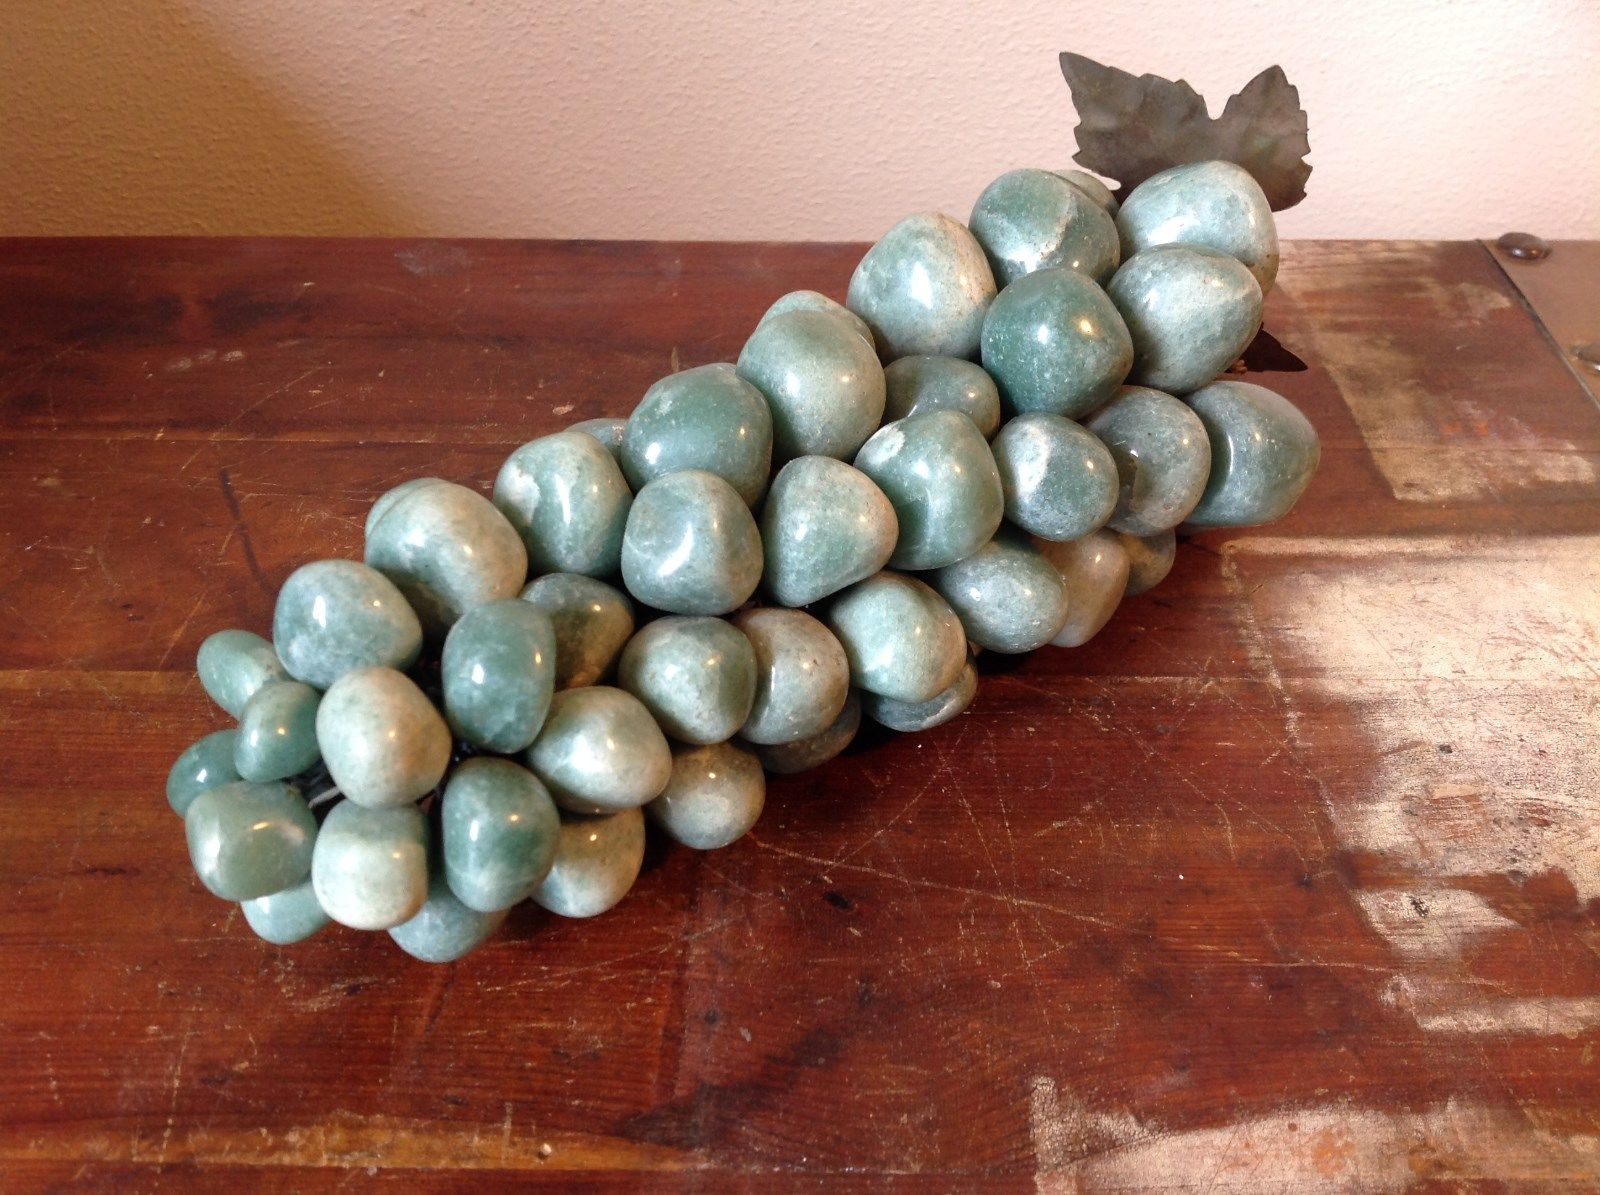 Stone Garden Ornament Resembles Grape Vines Green Stones with Metal Leaf on Top